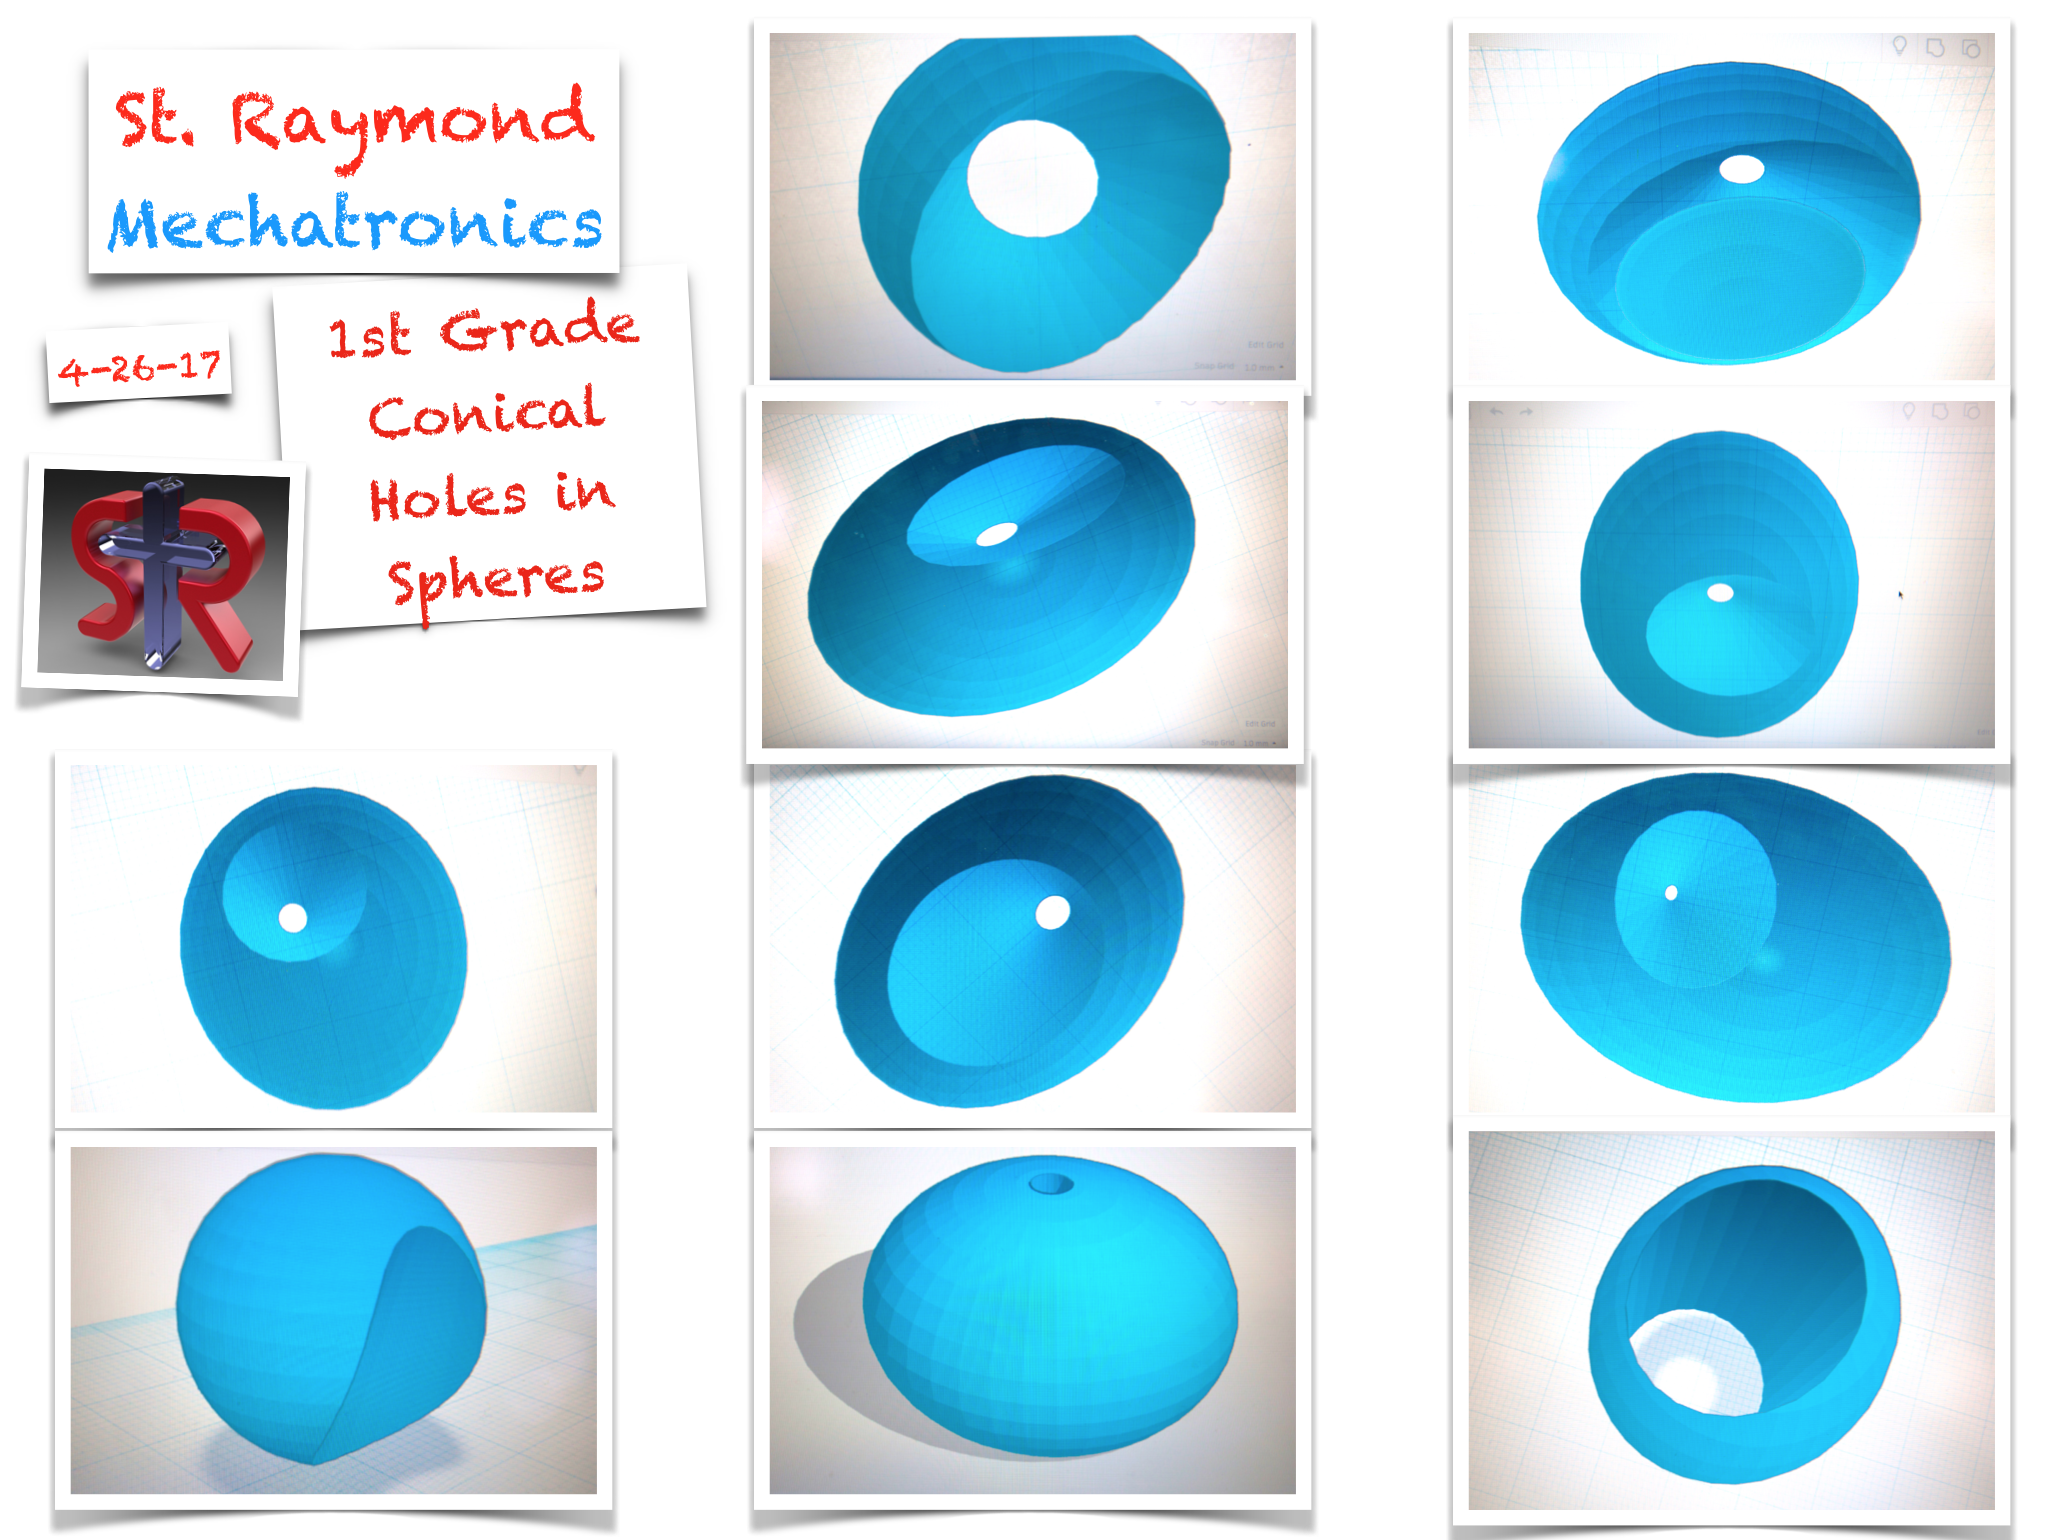 The 1st grade class produced the digital models (above) of Conical Holes in Spherical Volumes